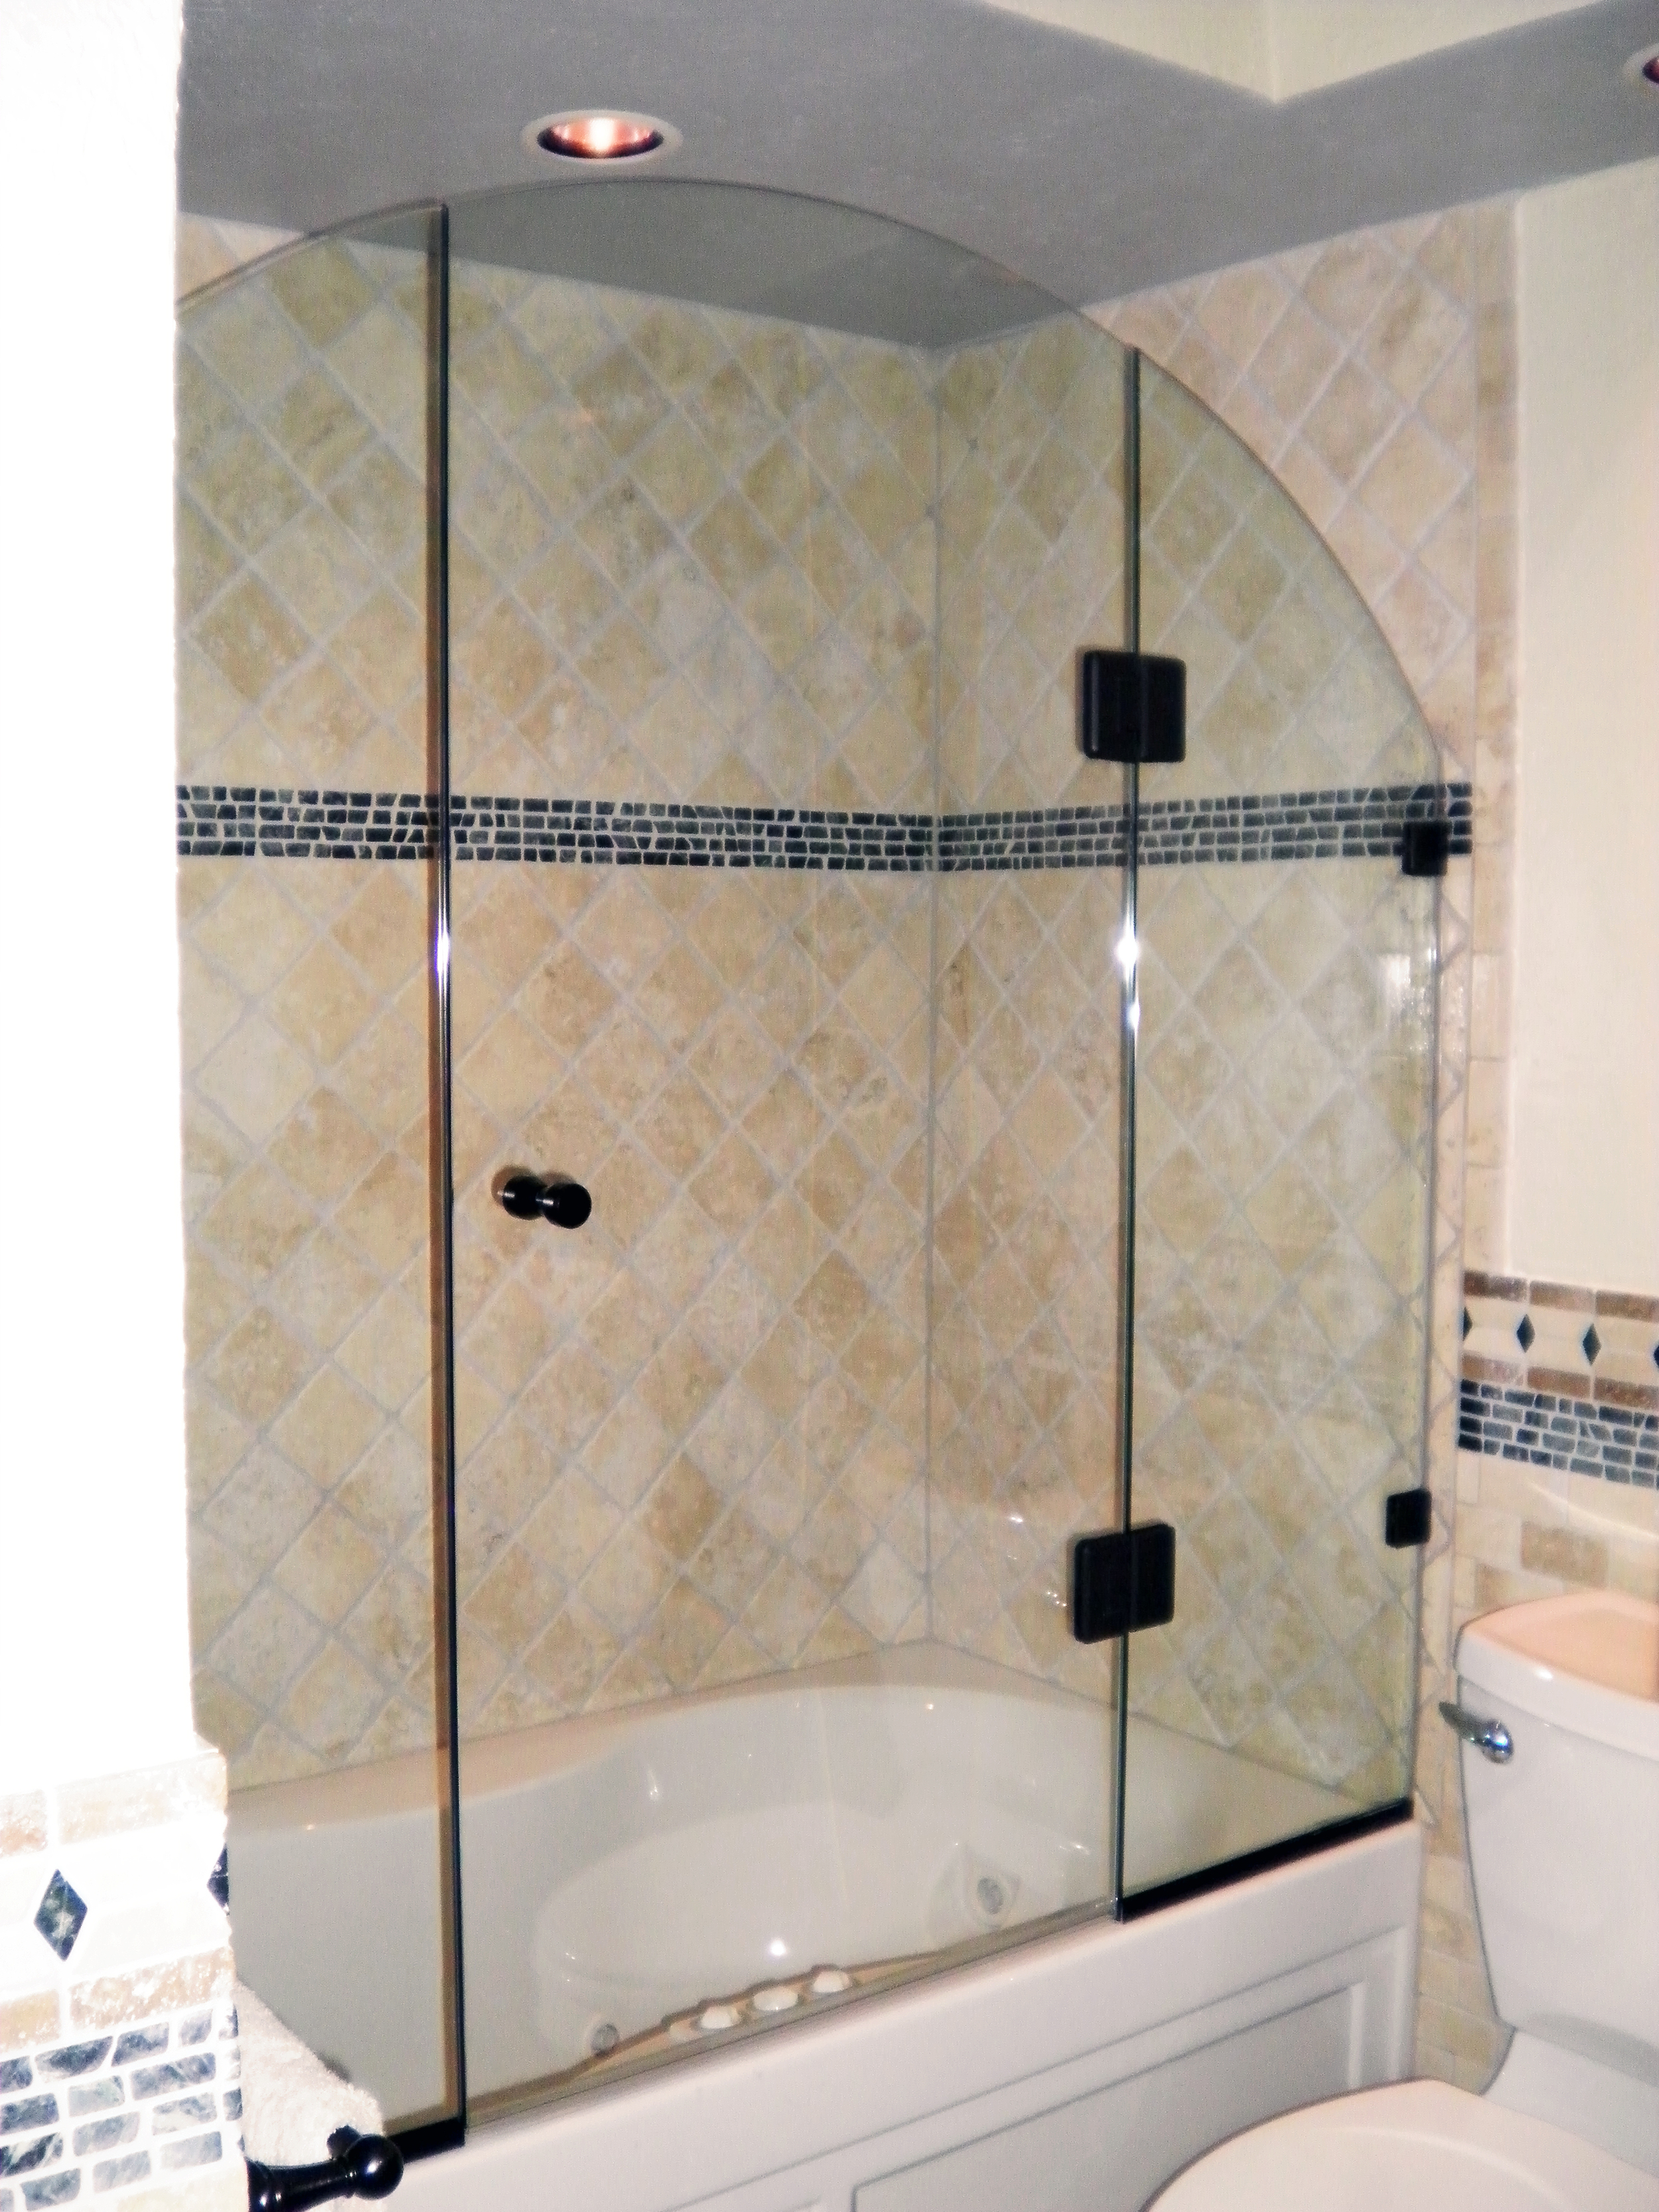 #8. This 3-piece inlineframeless solution features channel supports where the glass meetsthe tub. Glass-to-glass hinges allow the door to be in the center for optimal function and access.Beveled black hinges resonate with black tile accents and round out the look.